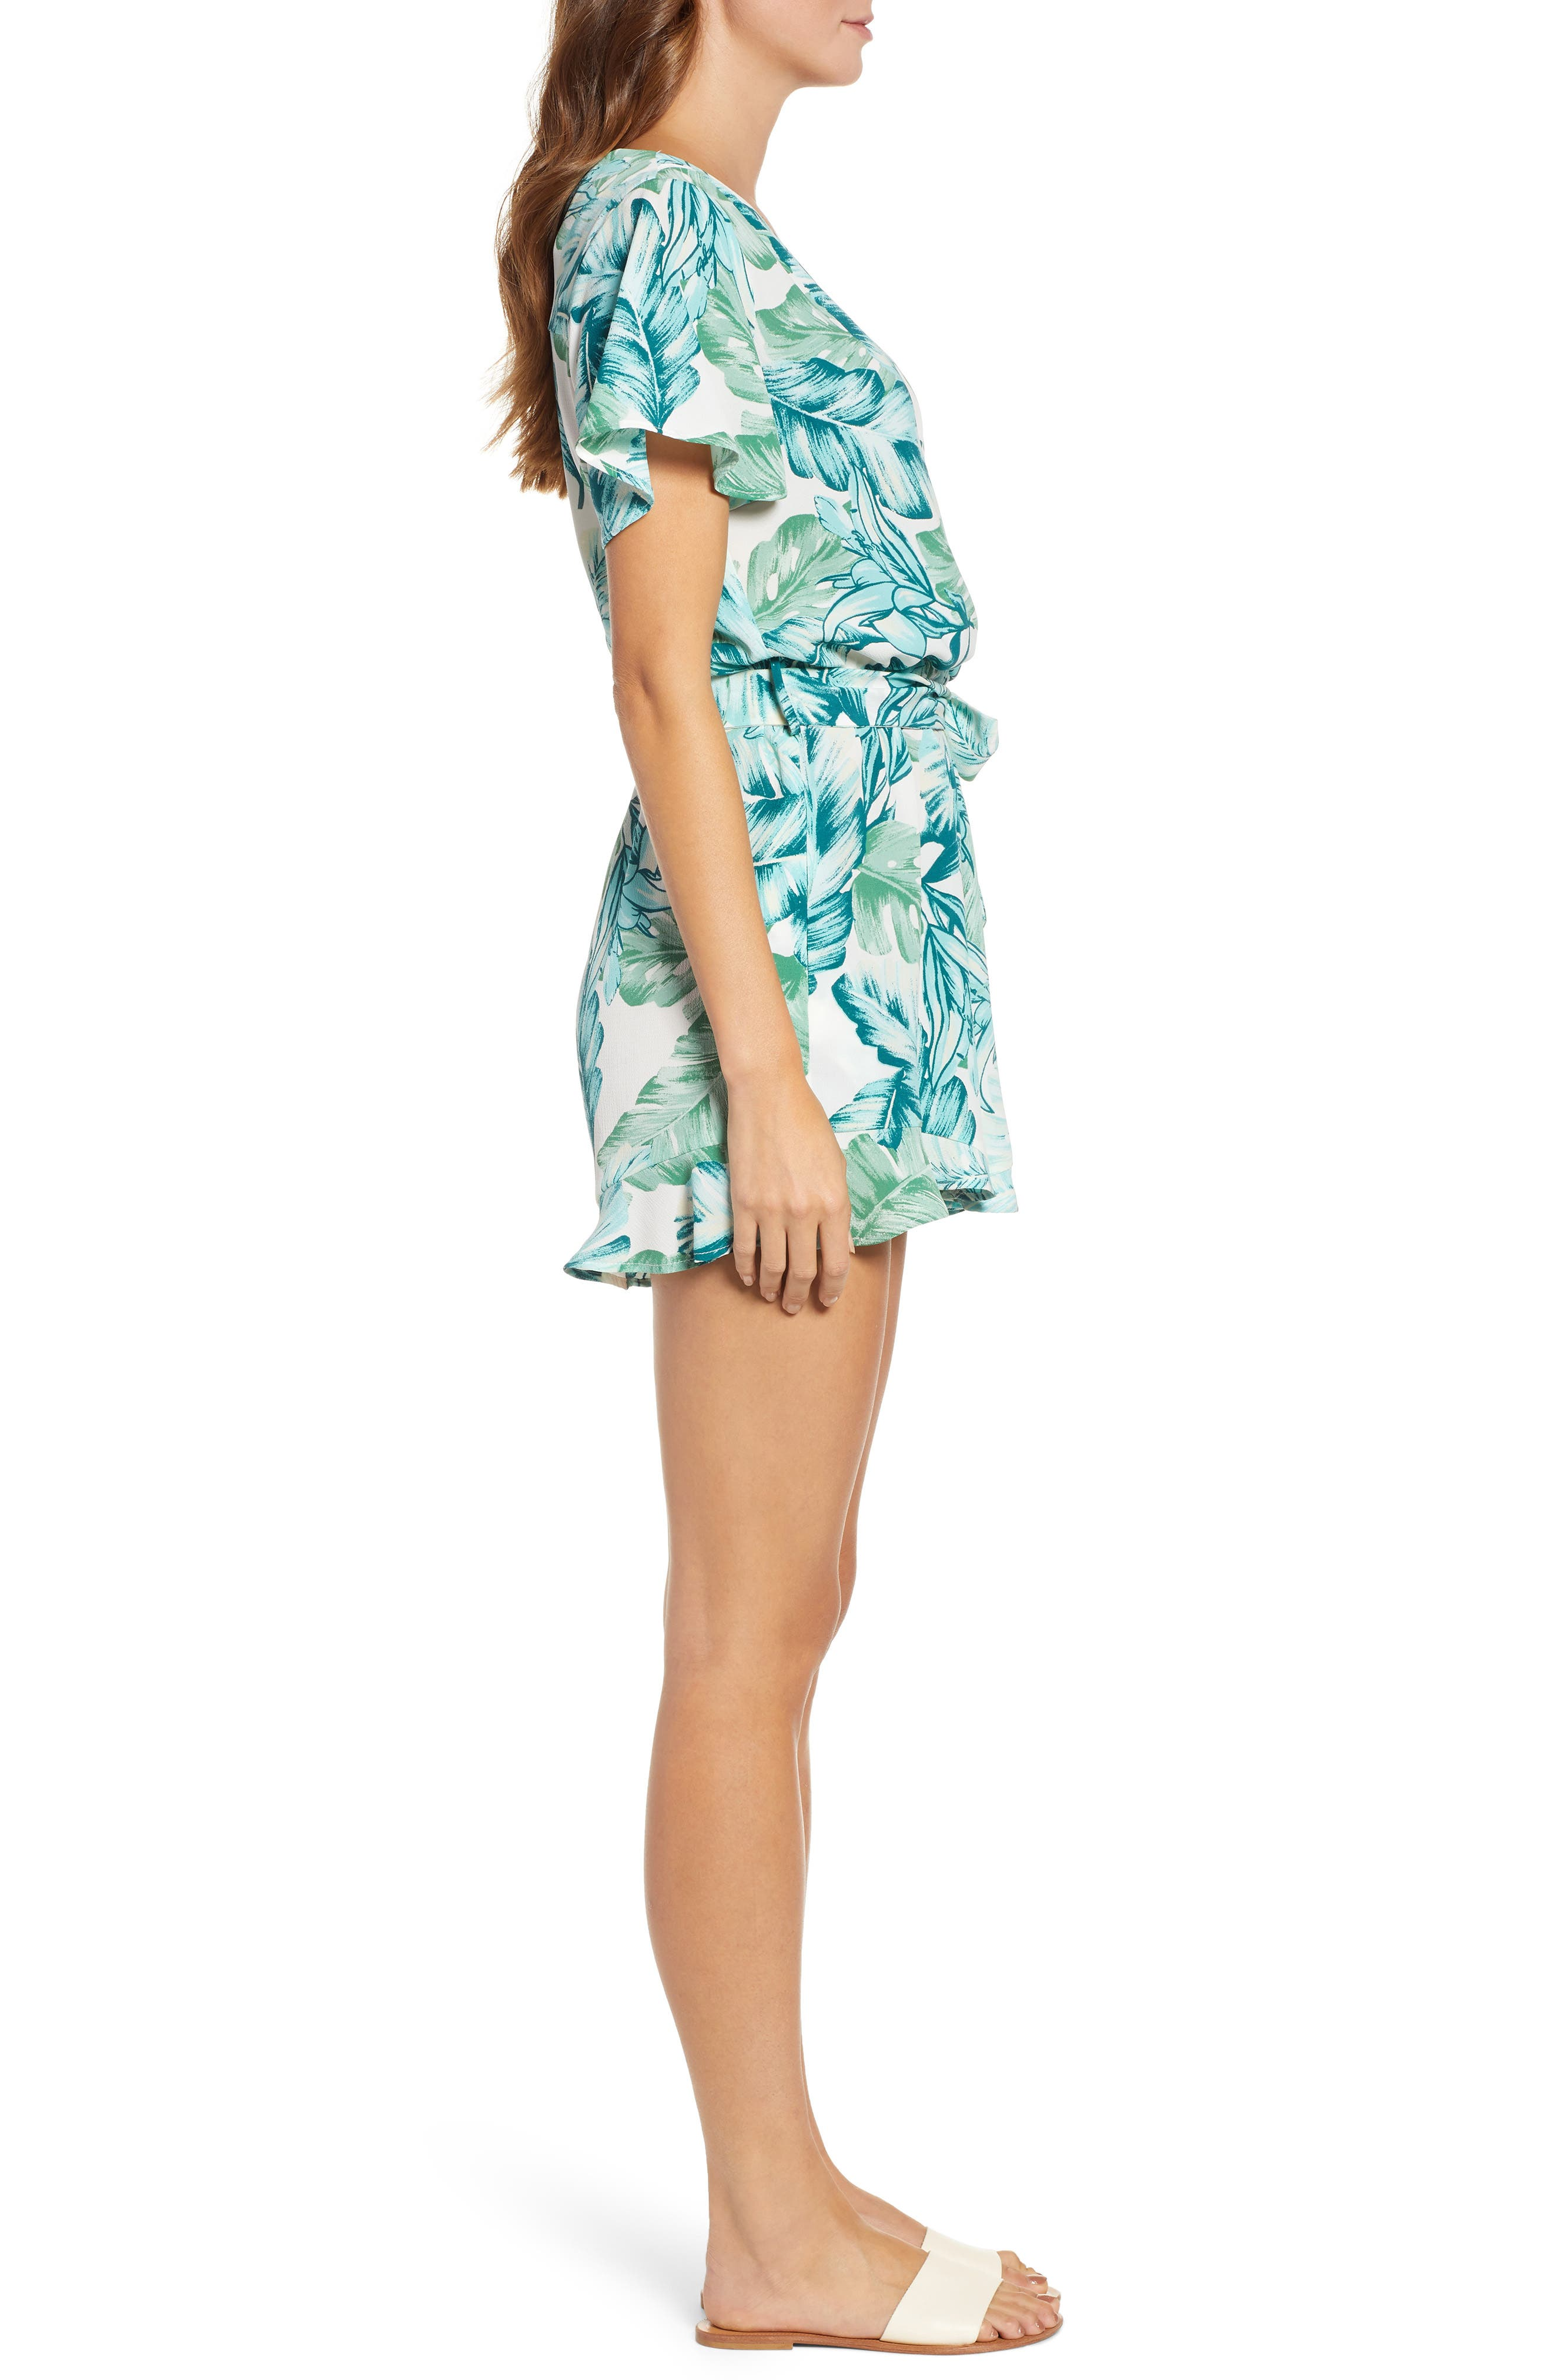 GIBSON, x Hi Sugarplum! Catalina Ruffle Hem Romper, Alternate thumbnail 4, color, PALM